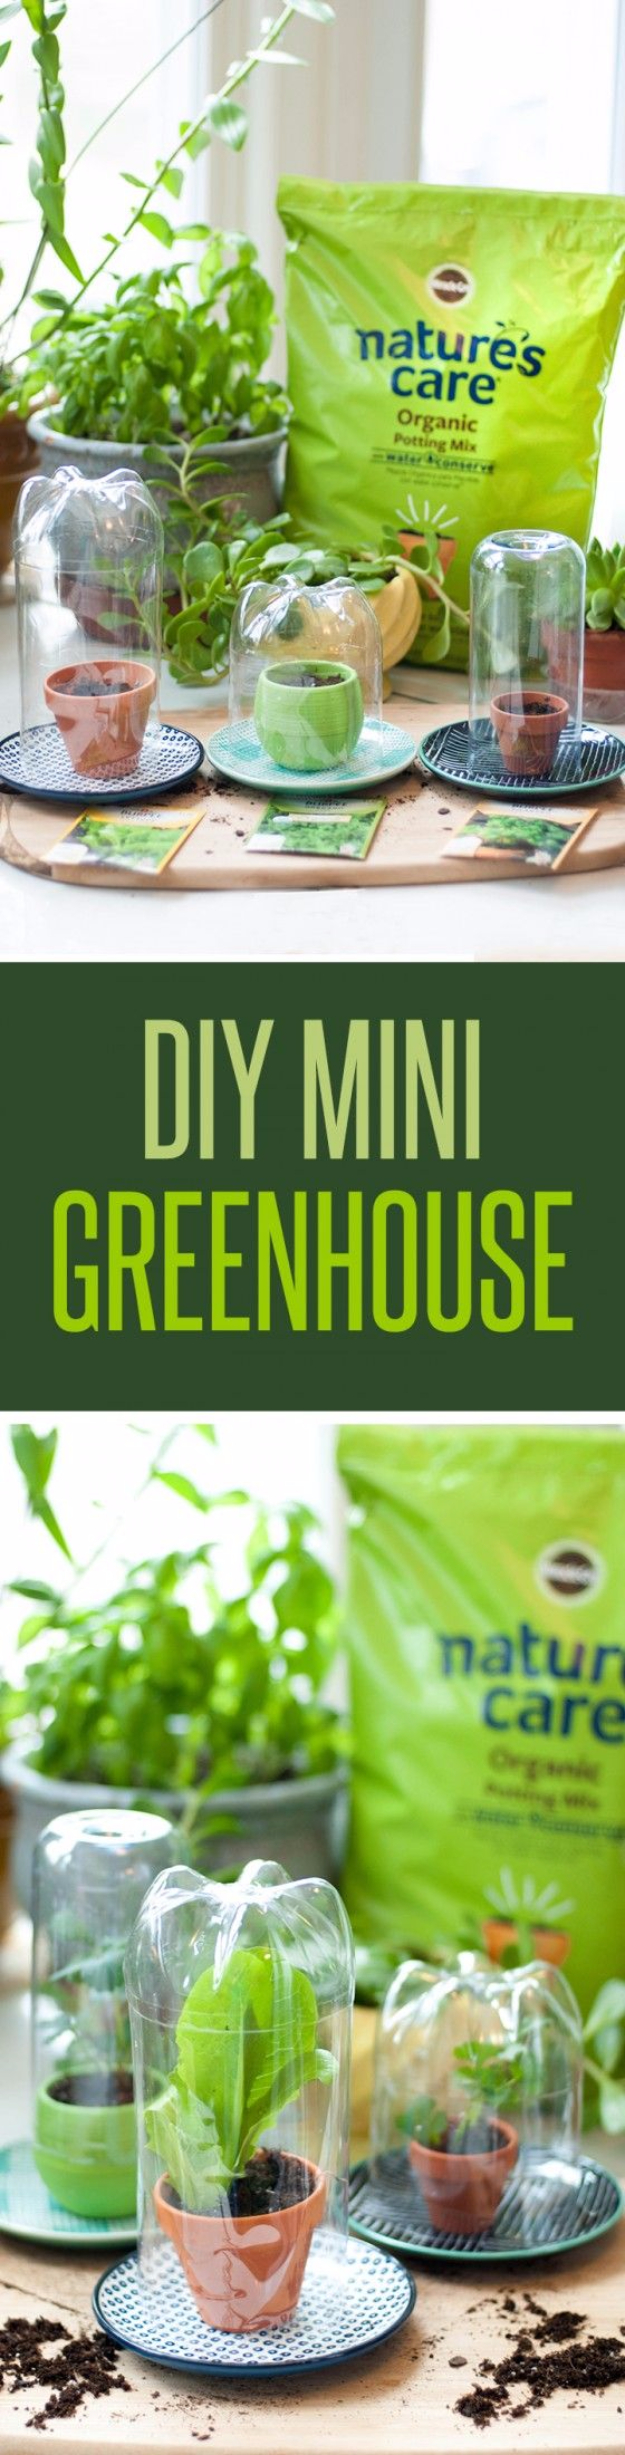 DIY Spring Gardening Projects - DIY Mini Greenhouses - Cool and Easy Planting Tips for Spring Garden - Step by Step Tutorials for Growing Seeds, Plants, Vegetables and Flowers in You Yard - DIY Project Ideas for Women and Men - Creative and Quick Backyard Ideas For Summer